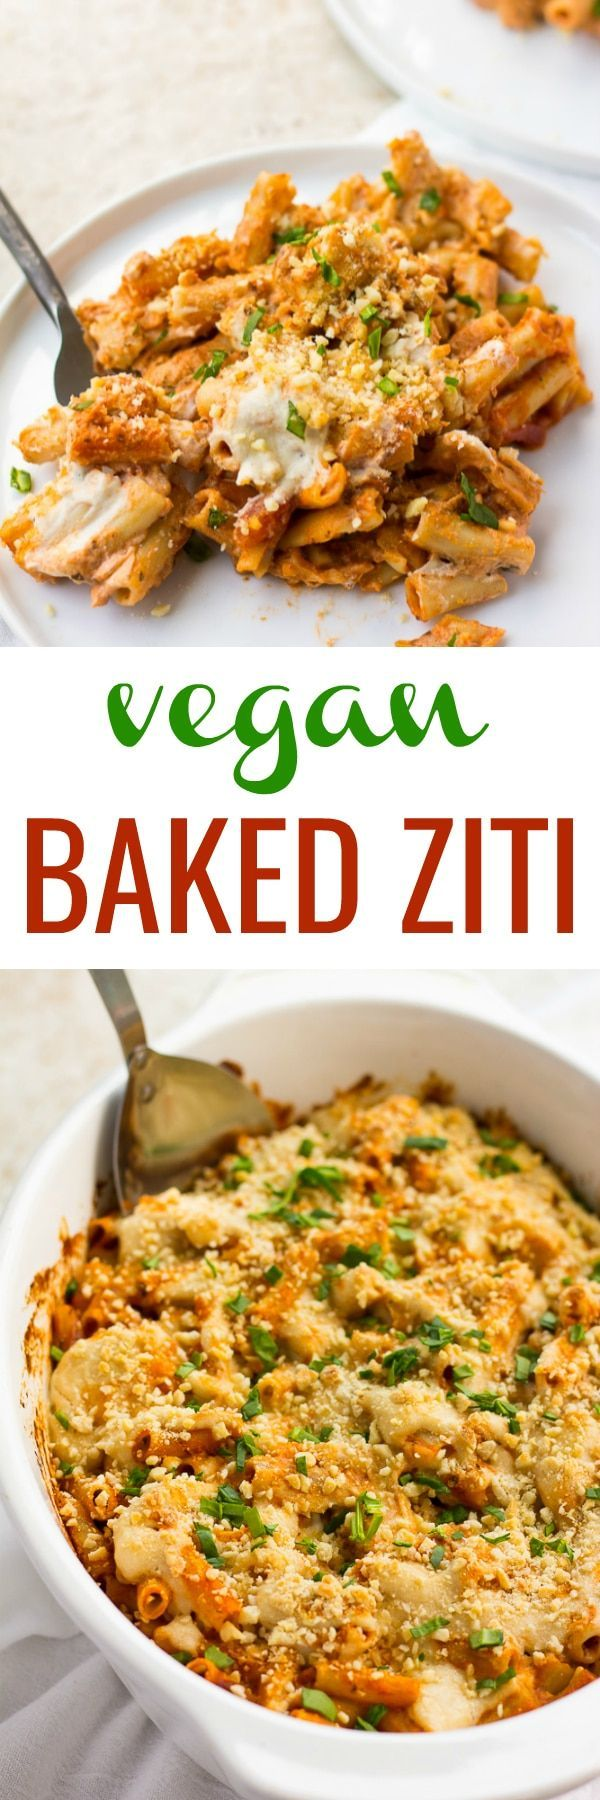 Vegan Baked Ziti Is Made With Whole Grain Noodles Gf Option Cashew Cheese And Vegan Parmesan Ch Vegetarian Vegan Recipes Vegan Pasta Dish Whole Food Recipes